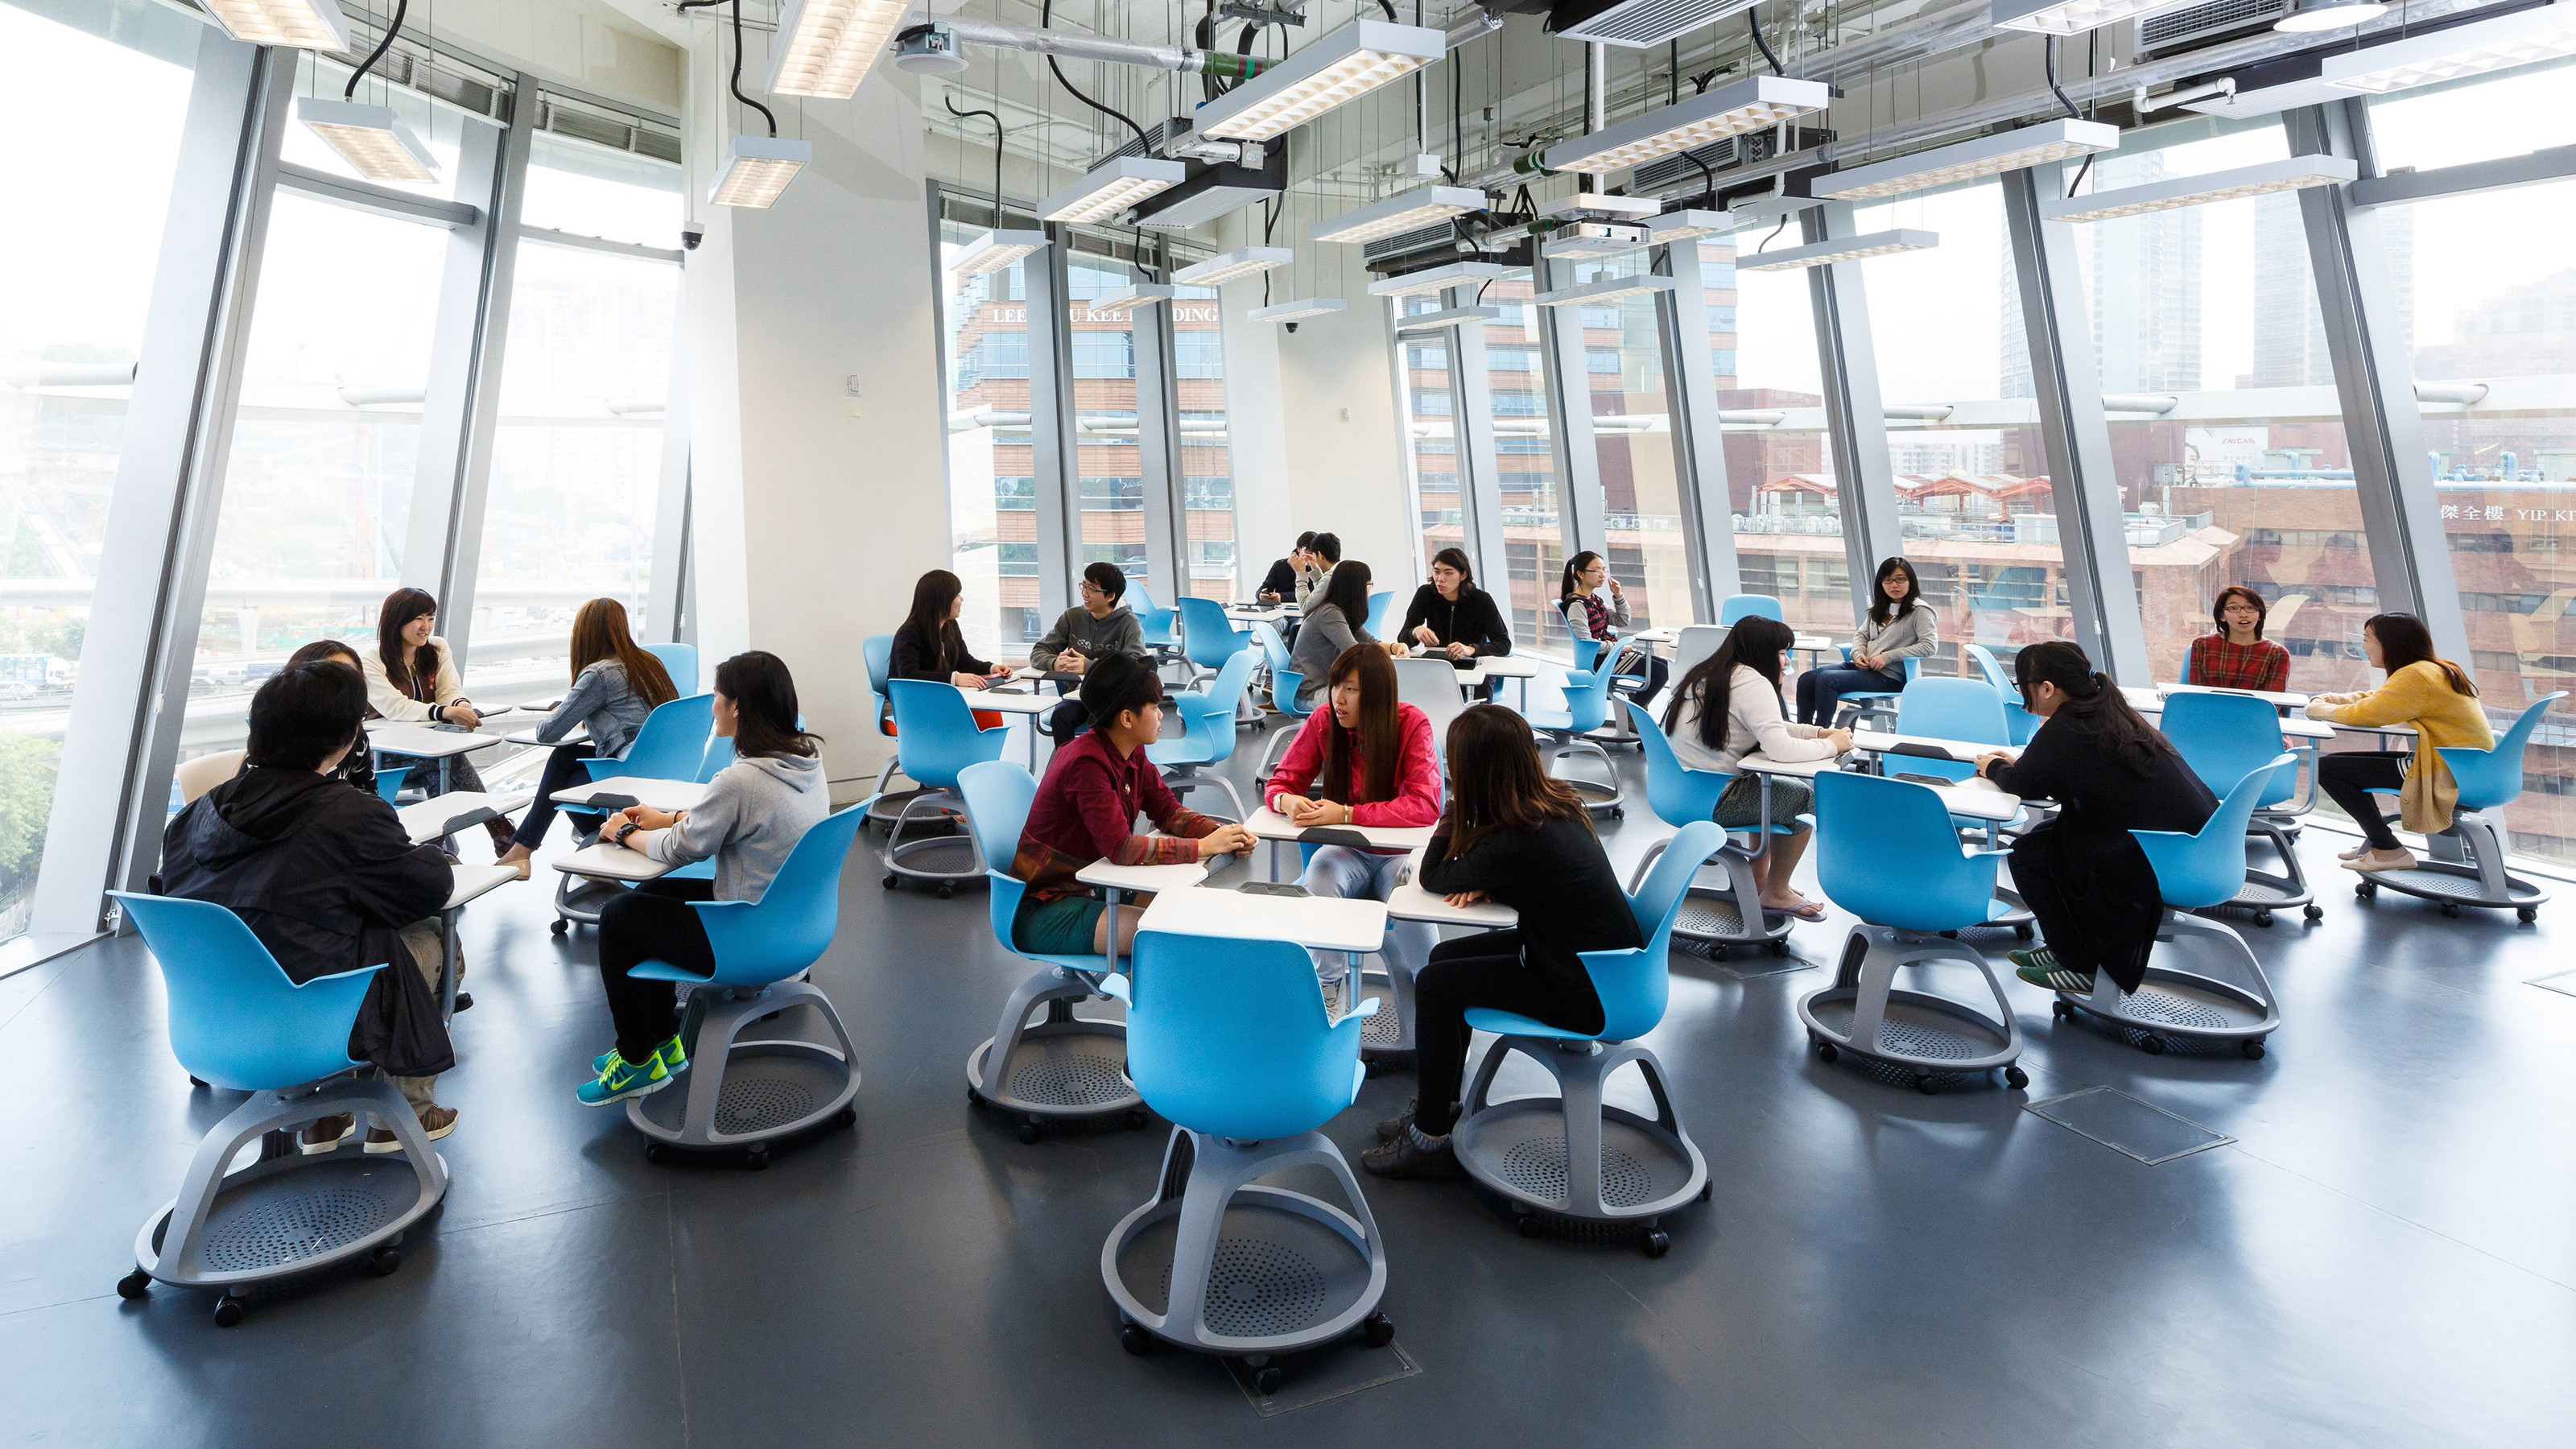 Innovative Classroom University ~ Hong kong polytechnic university innovation center